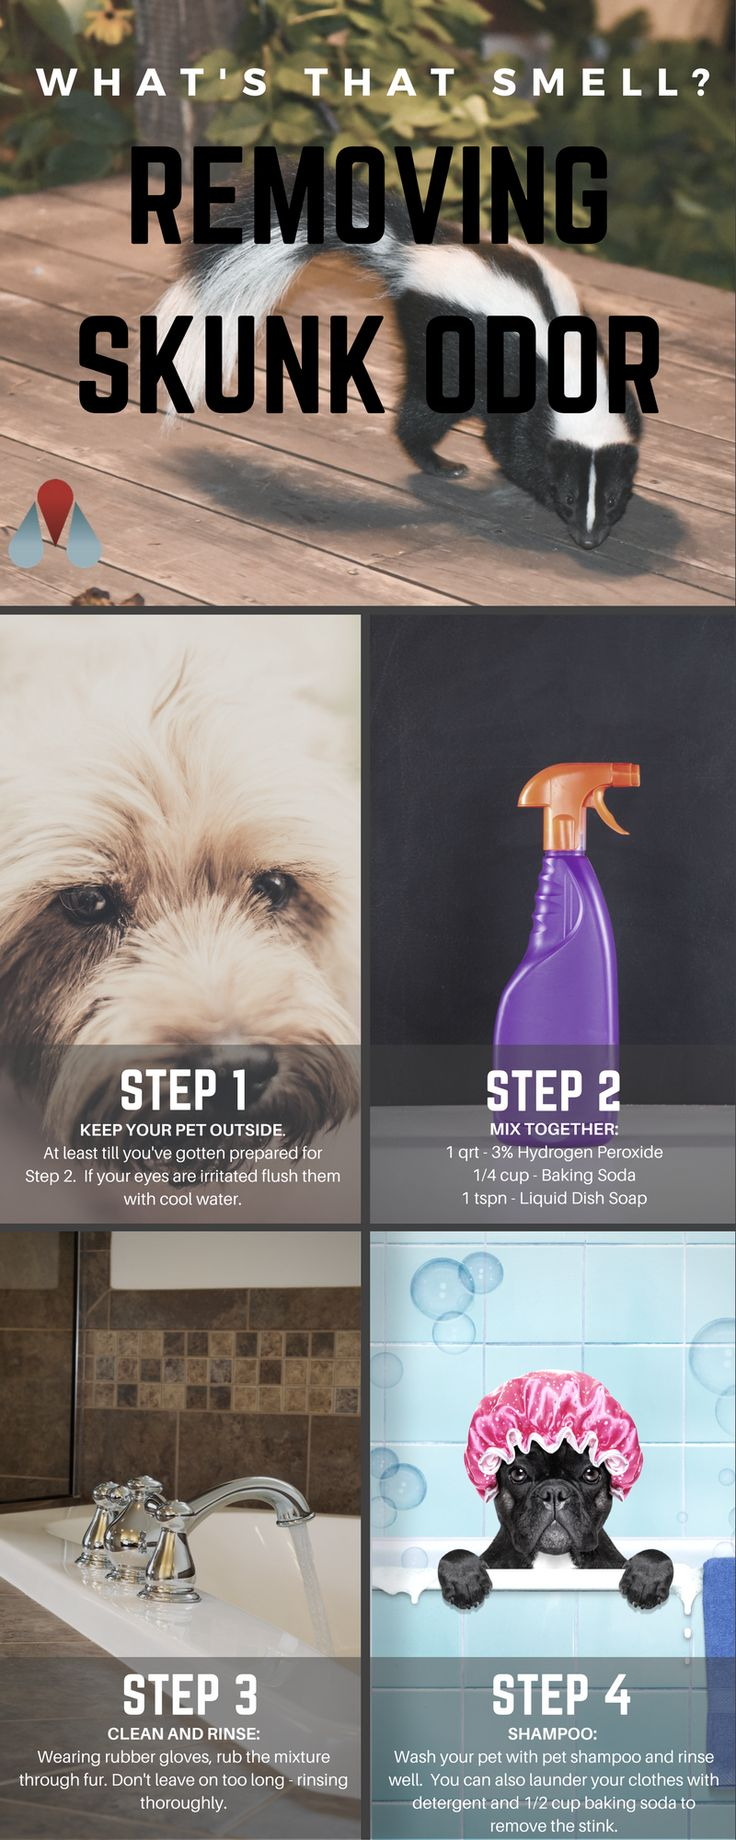 Get Rid of that Skunk Smell - Quick & Easy Skunk Odor Removal